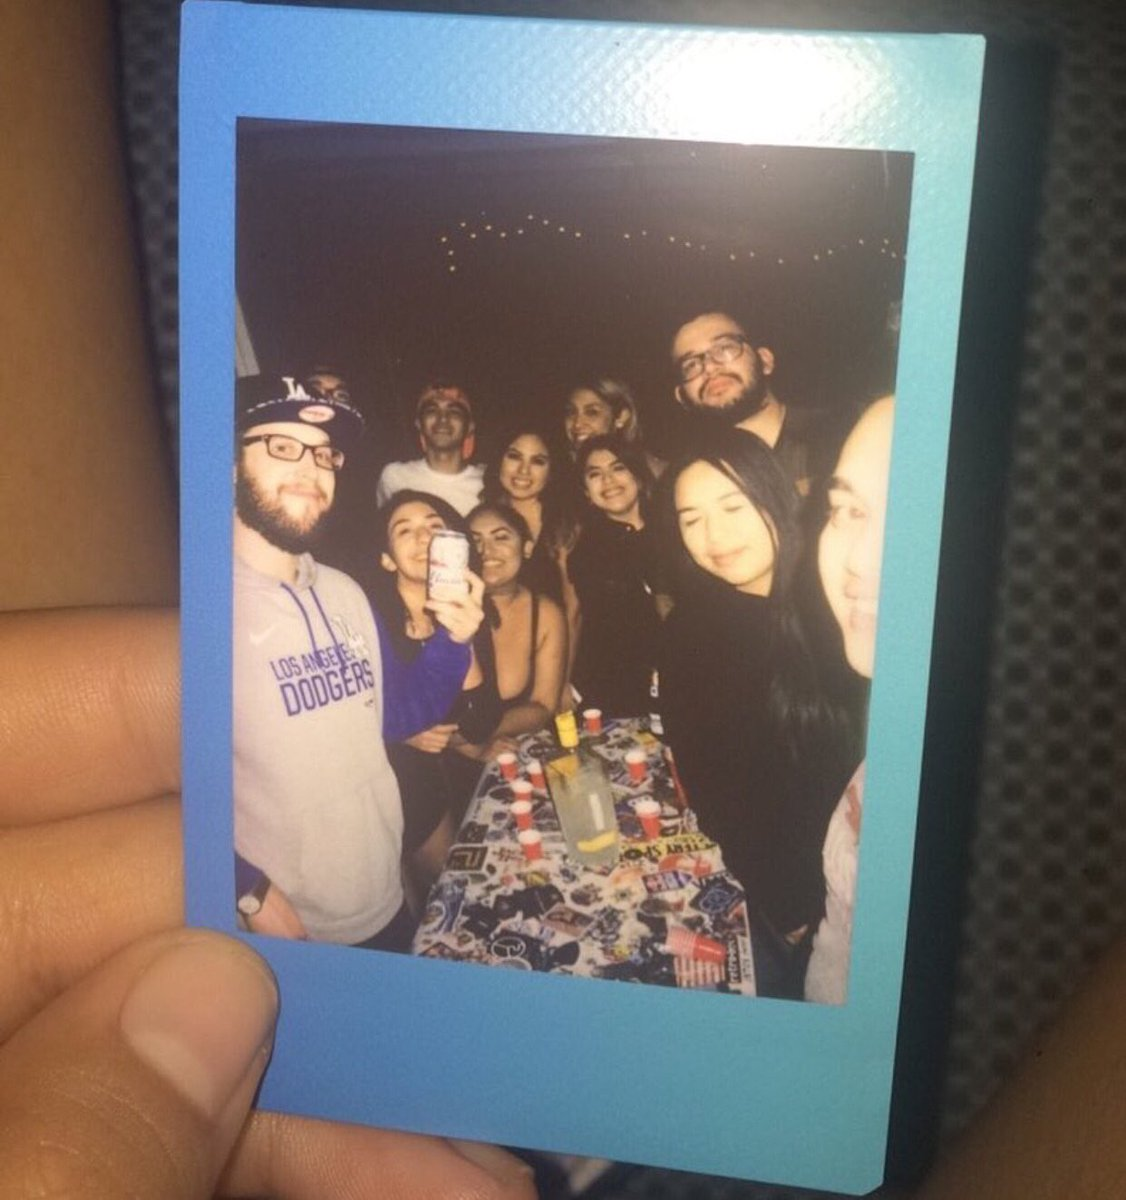 Friendsgiving w/ the best people I'm blessed enough to call my rave fam  #Friendsgiving2k17 #Fam  @_redmermaidgirl @leflower @cinddylouu @Alonsocuhh<br>http://pic.twitter.com/5bxGzs8Un8